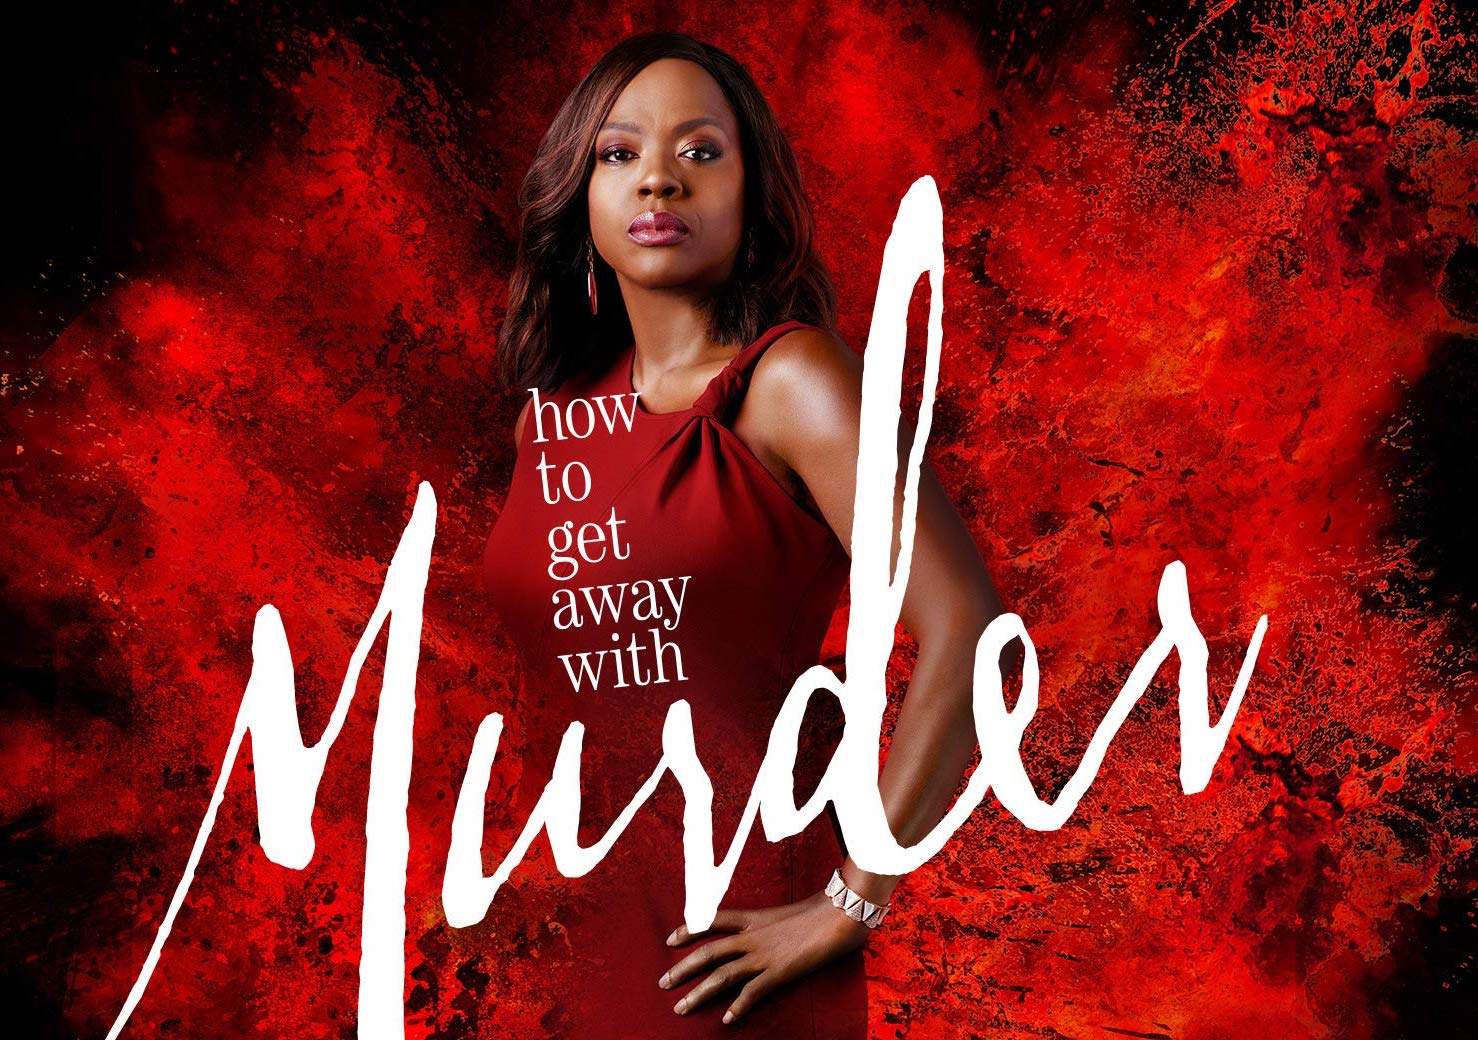 How To Get Away With Murder Renewed For 6th Season